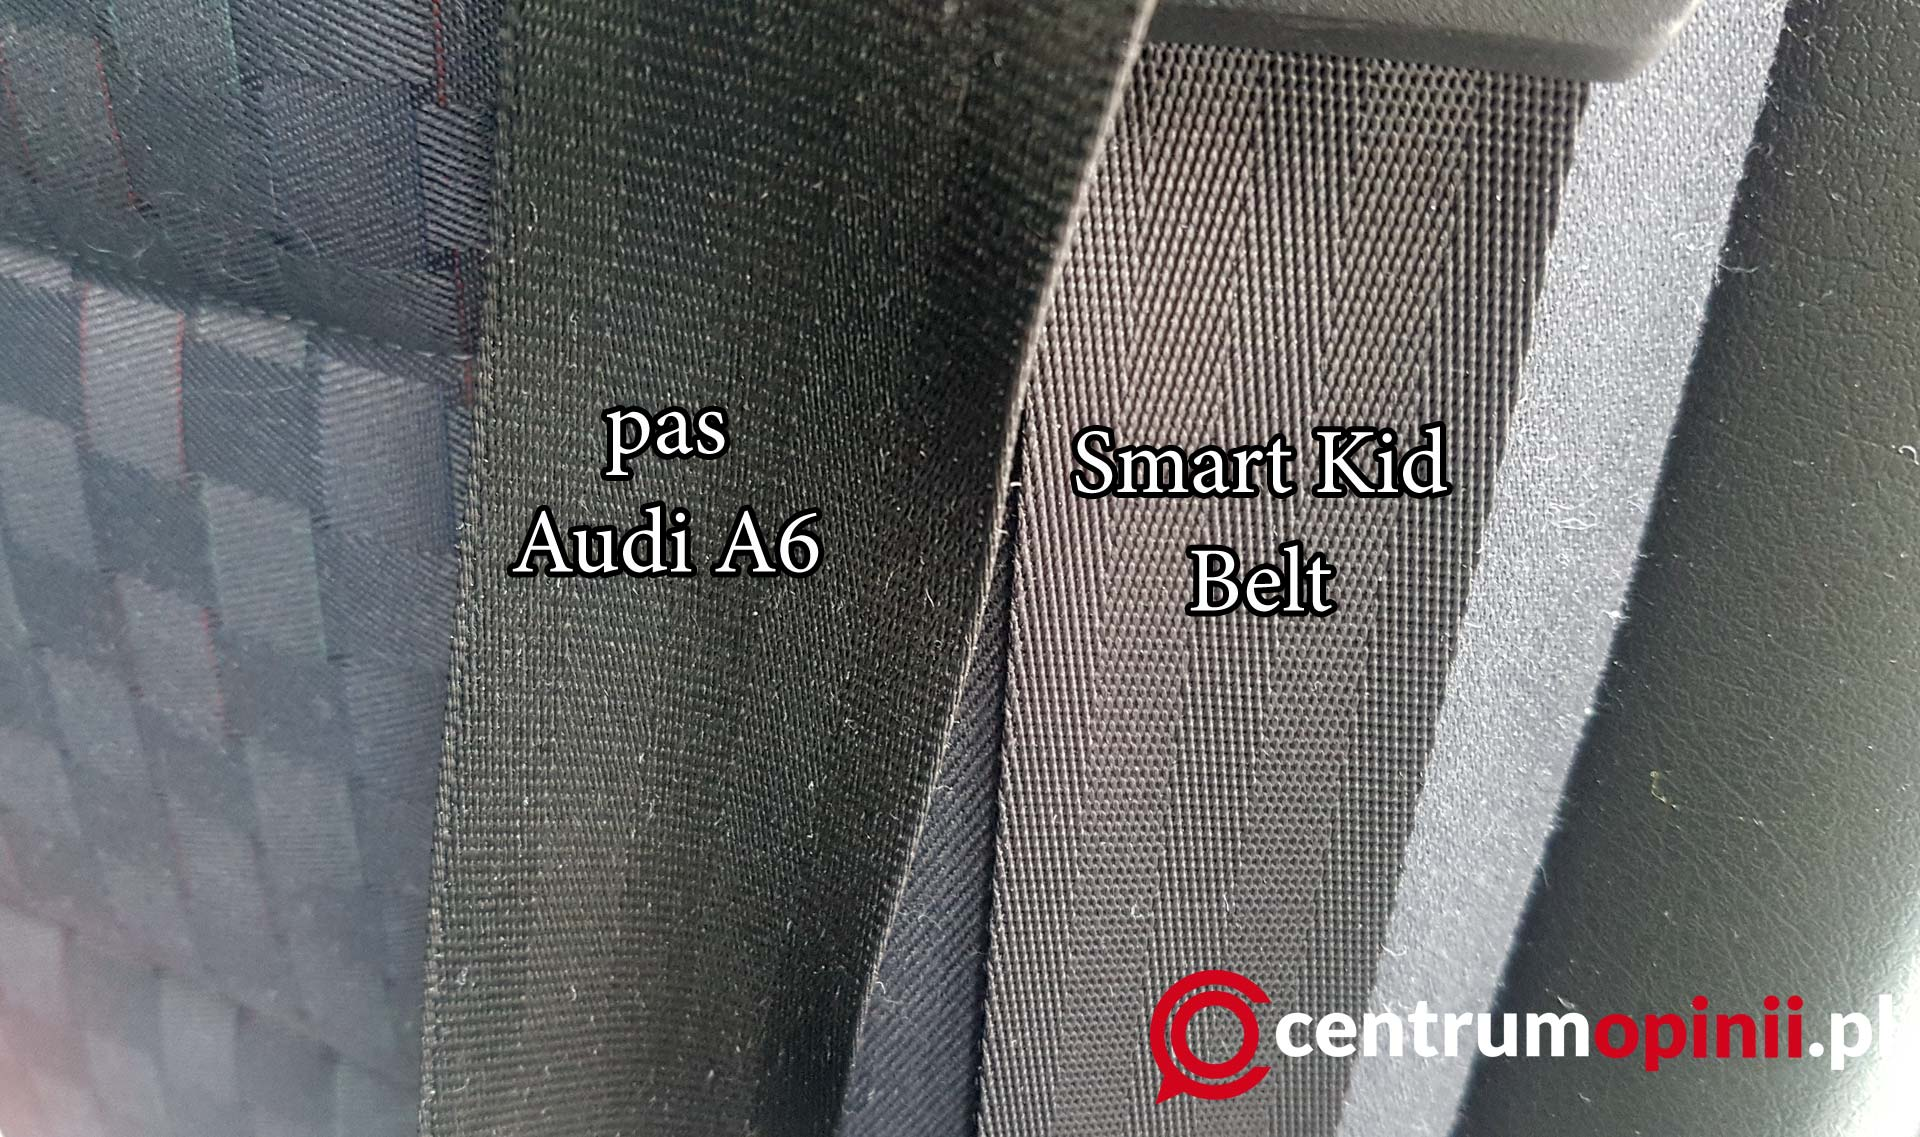 Smart Kid Belt opinie test i recenzja